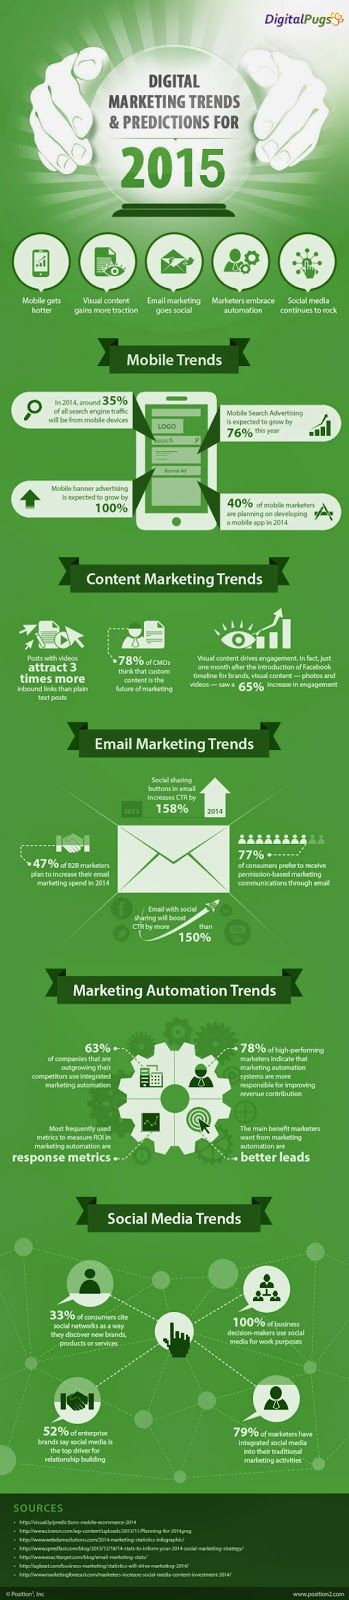 Digital Marketing Trends & Predictions For 2015 #infographic